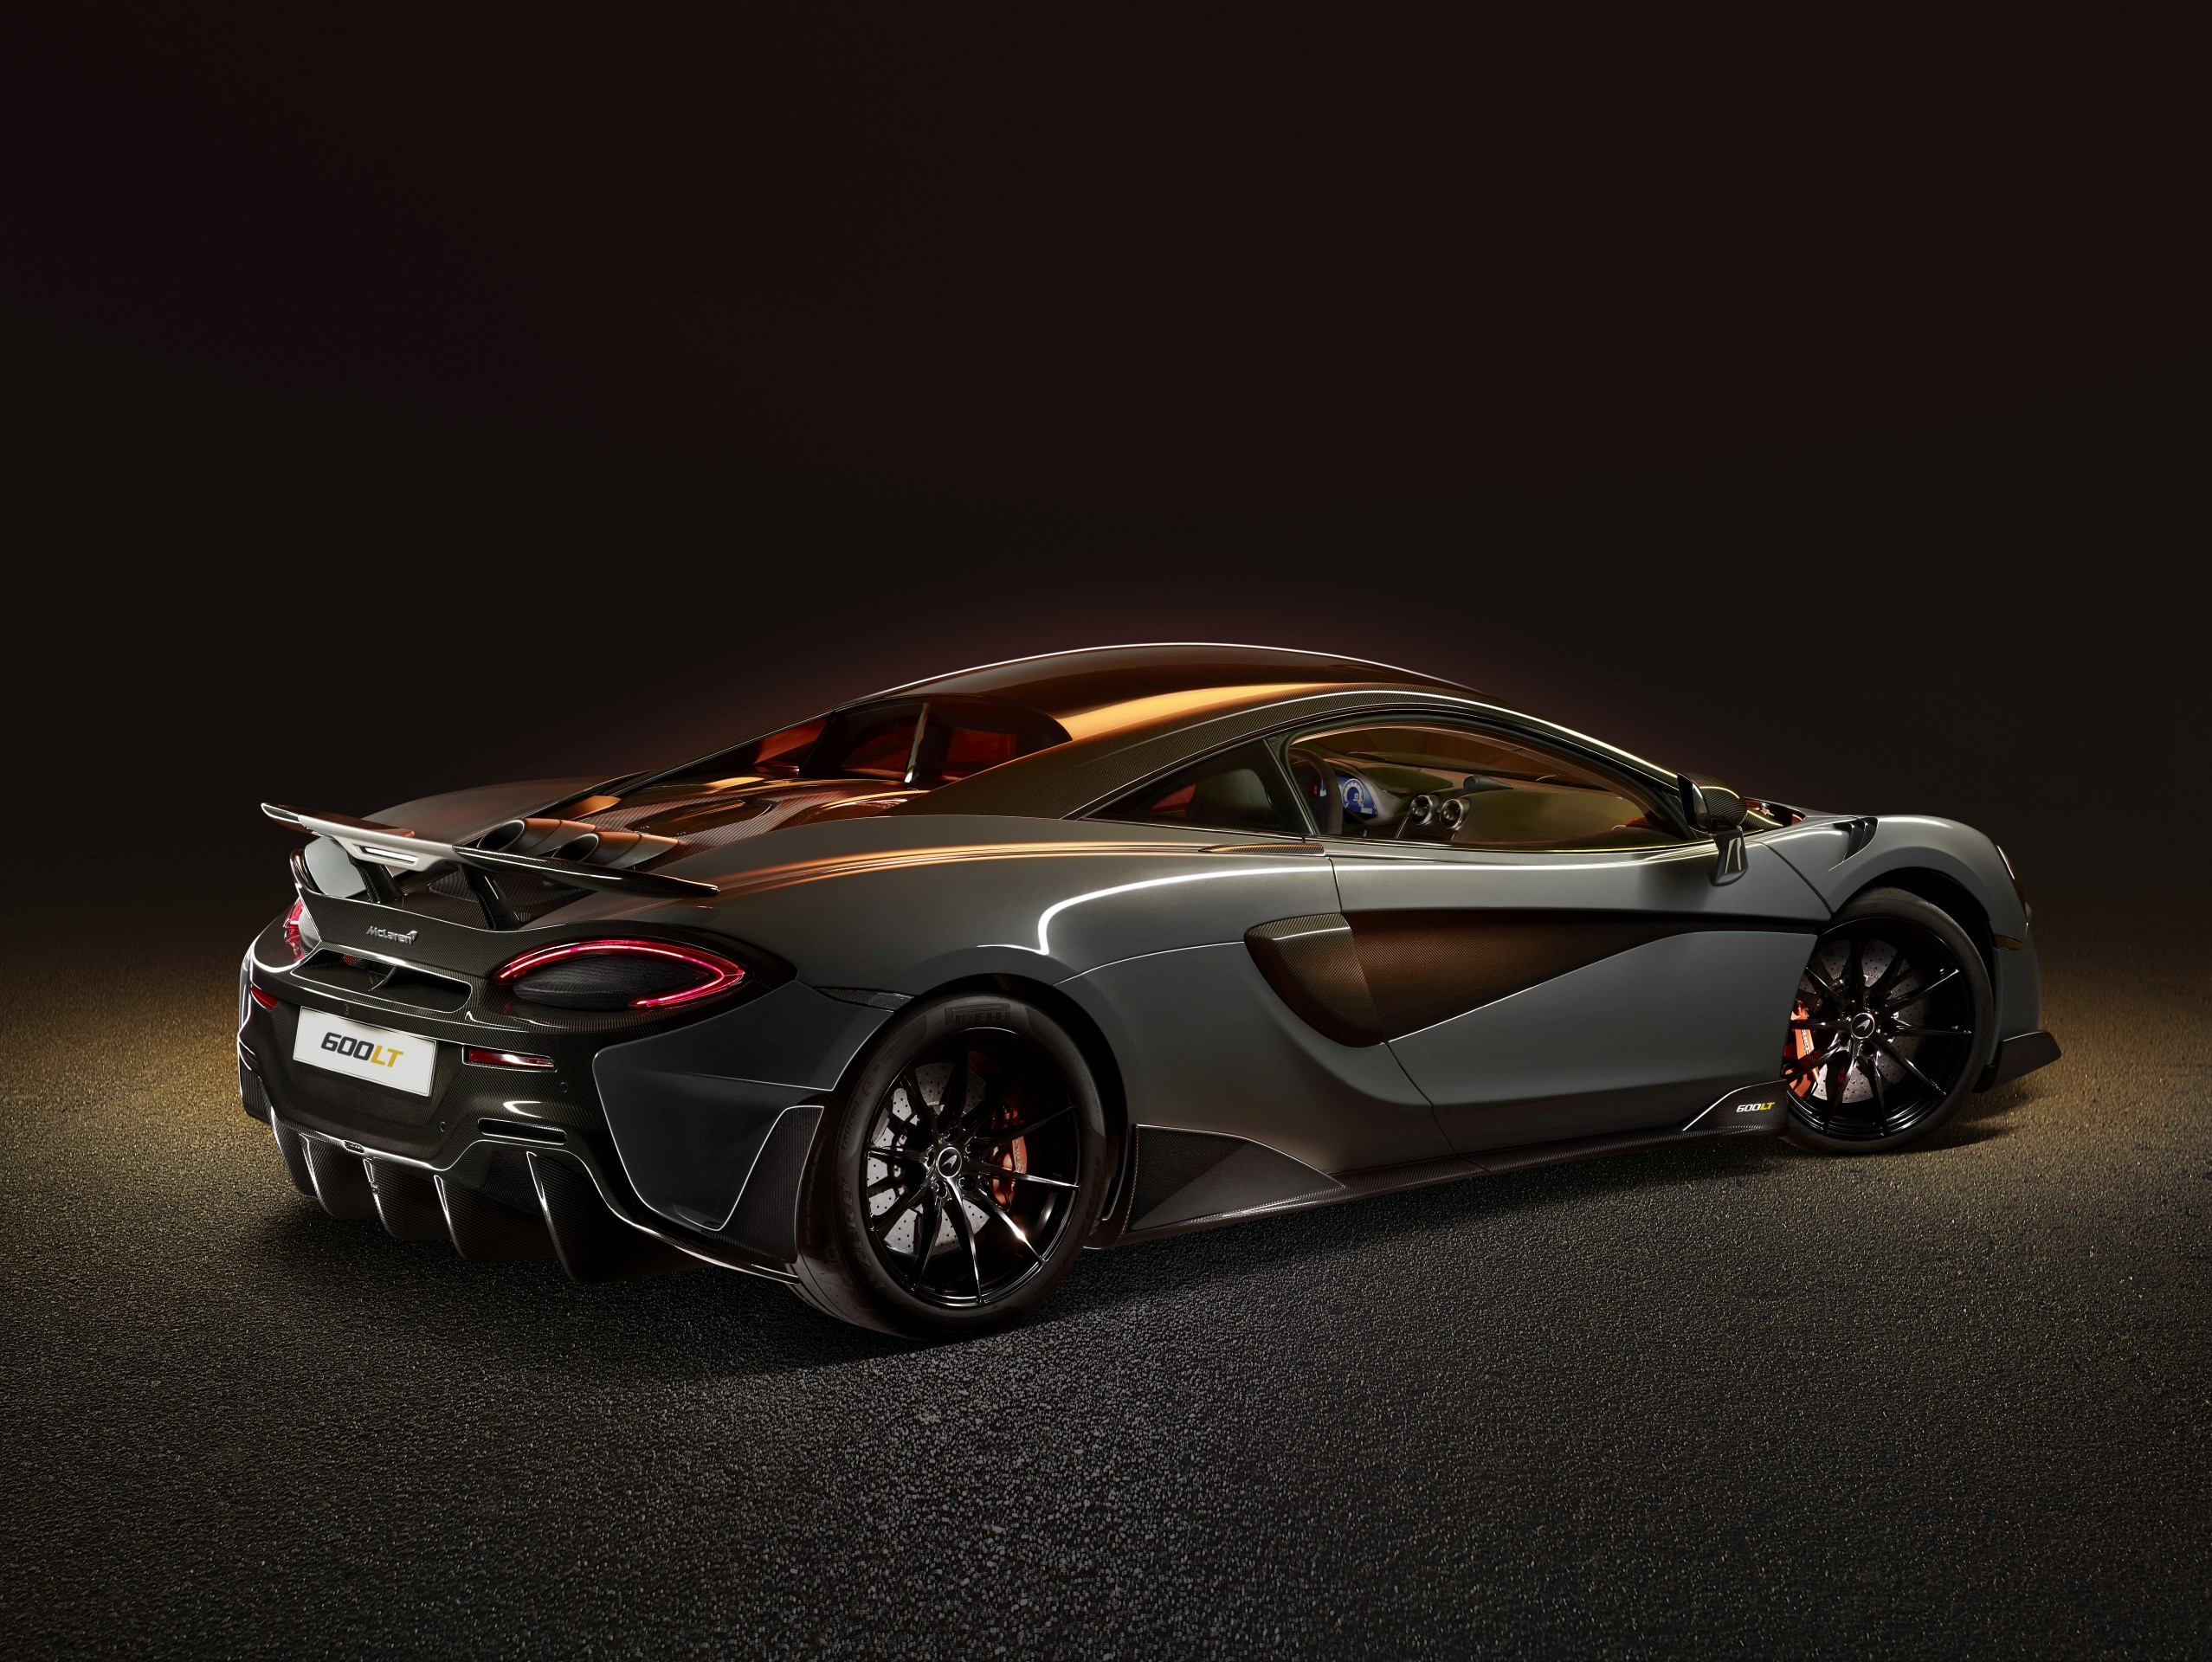 McLaren 600LT is a longer, leaner, meaner 570S